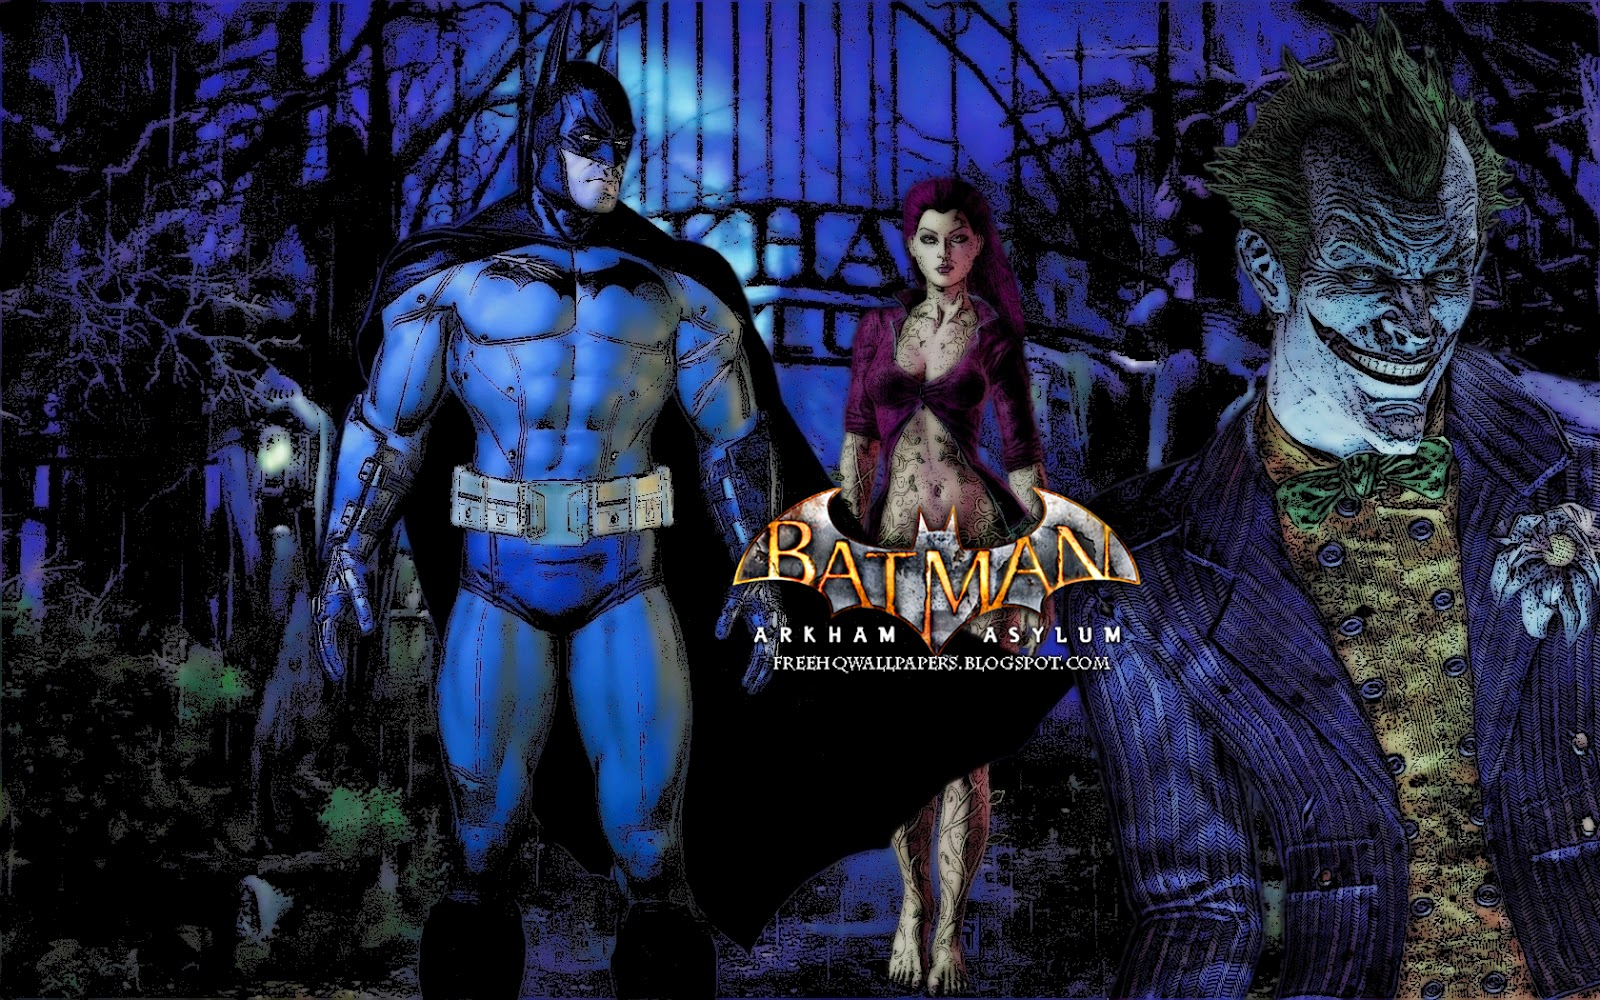 Batman Arkham Asylum HQ HQ Wallpapers 1600x1000